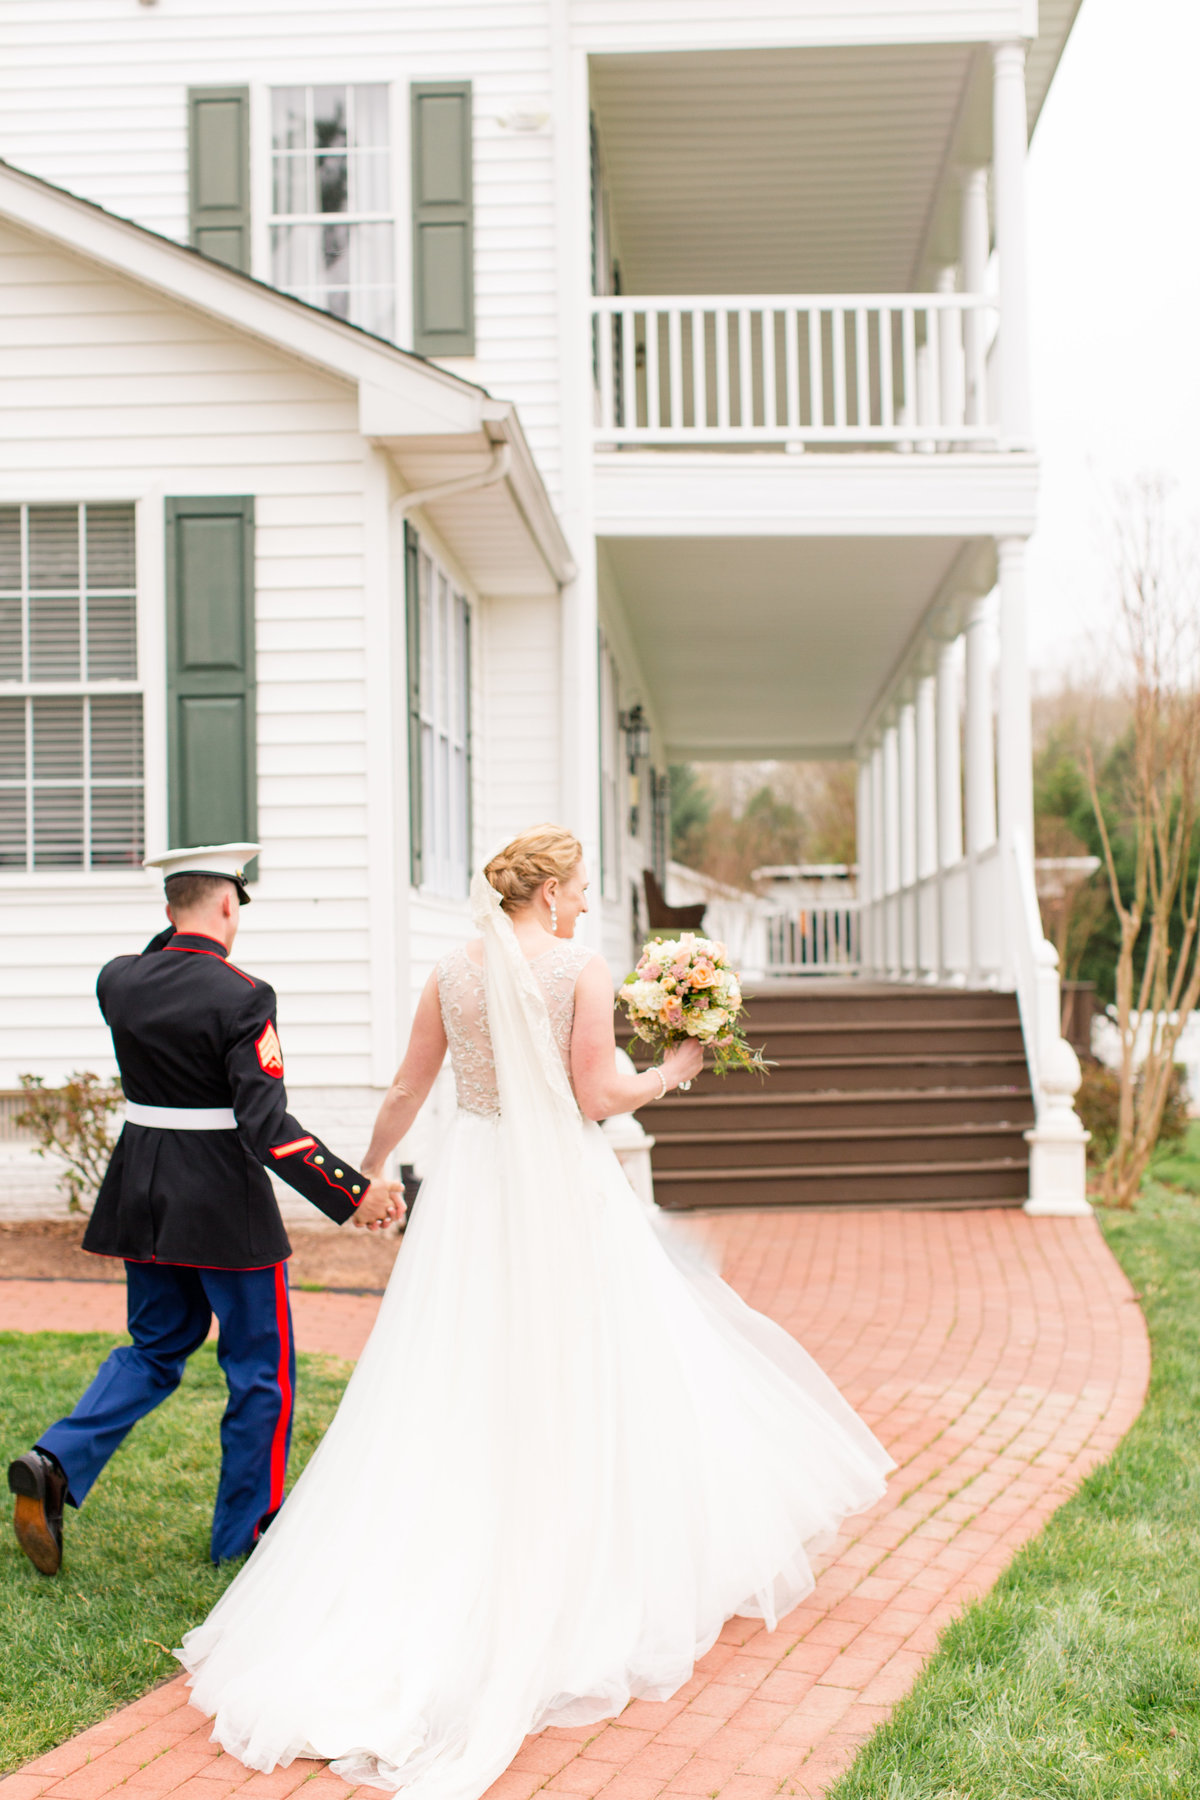 Stafford, Virginia wedding by Marie Hamilton Photography